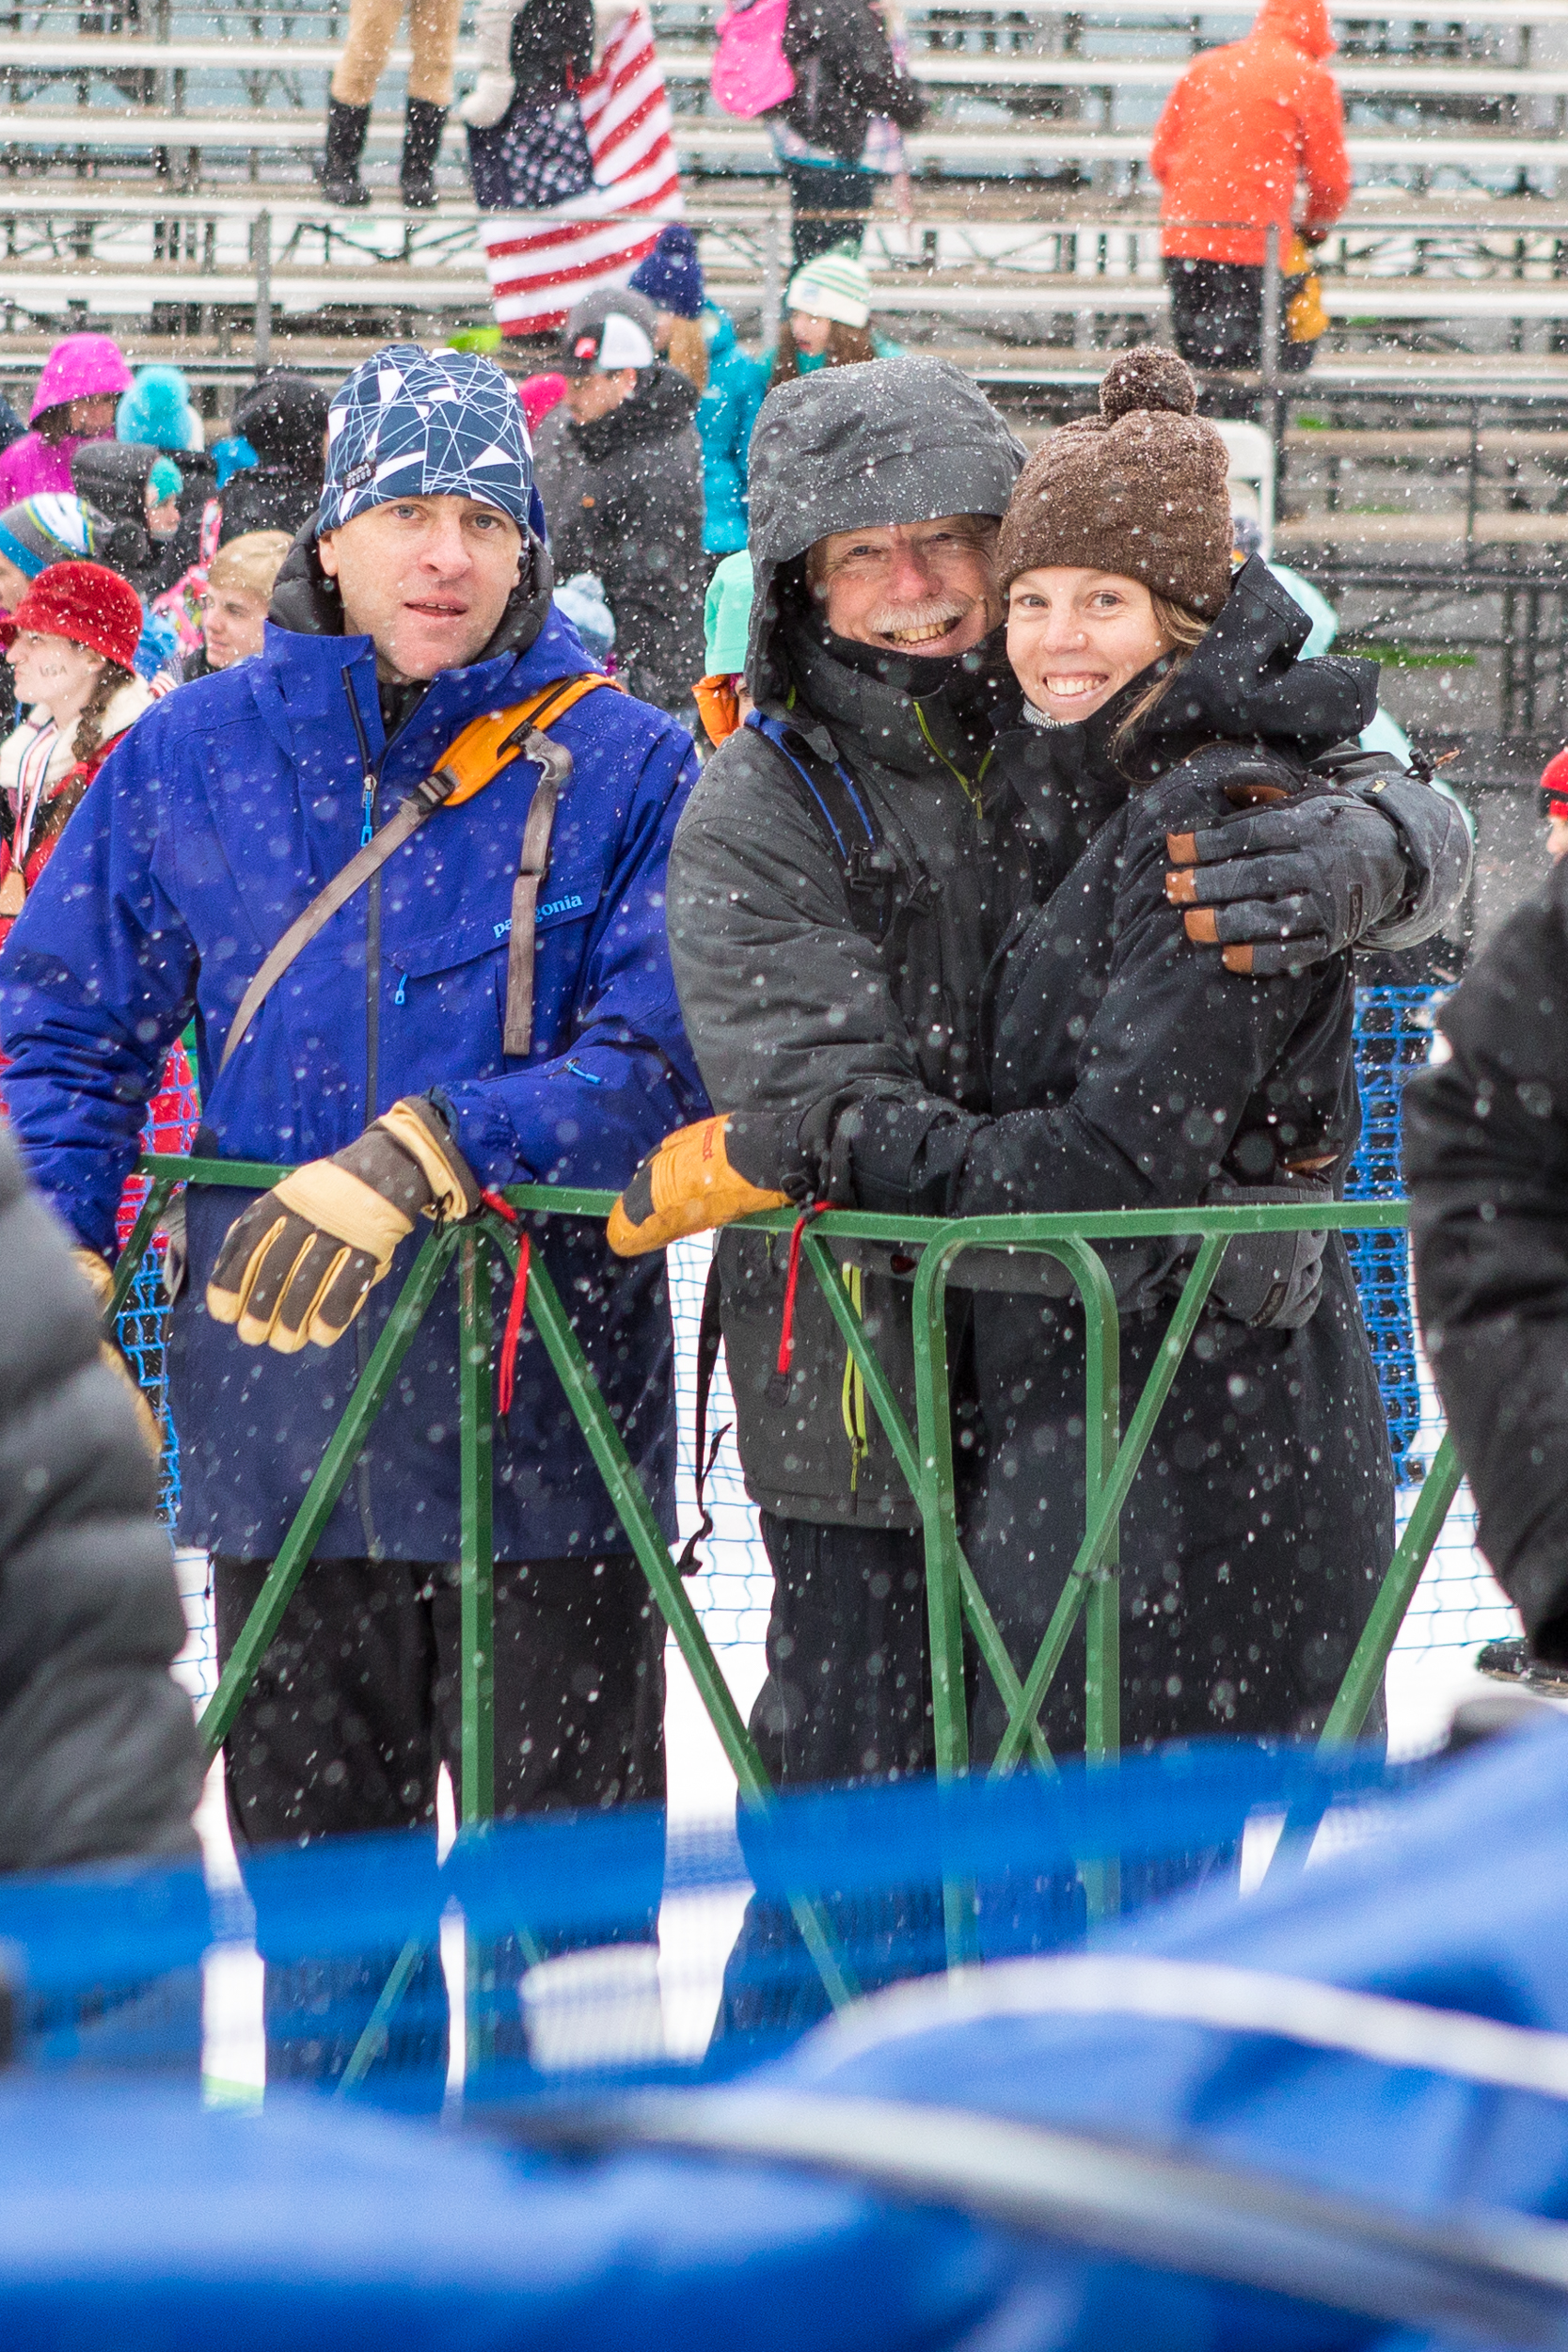 Killington-World-Cup-McCloys.jpg